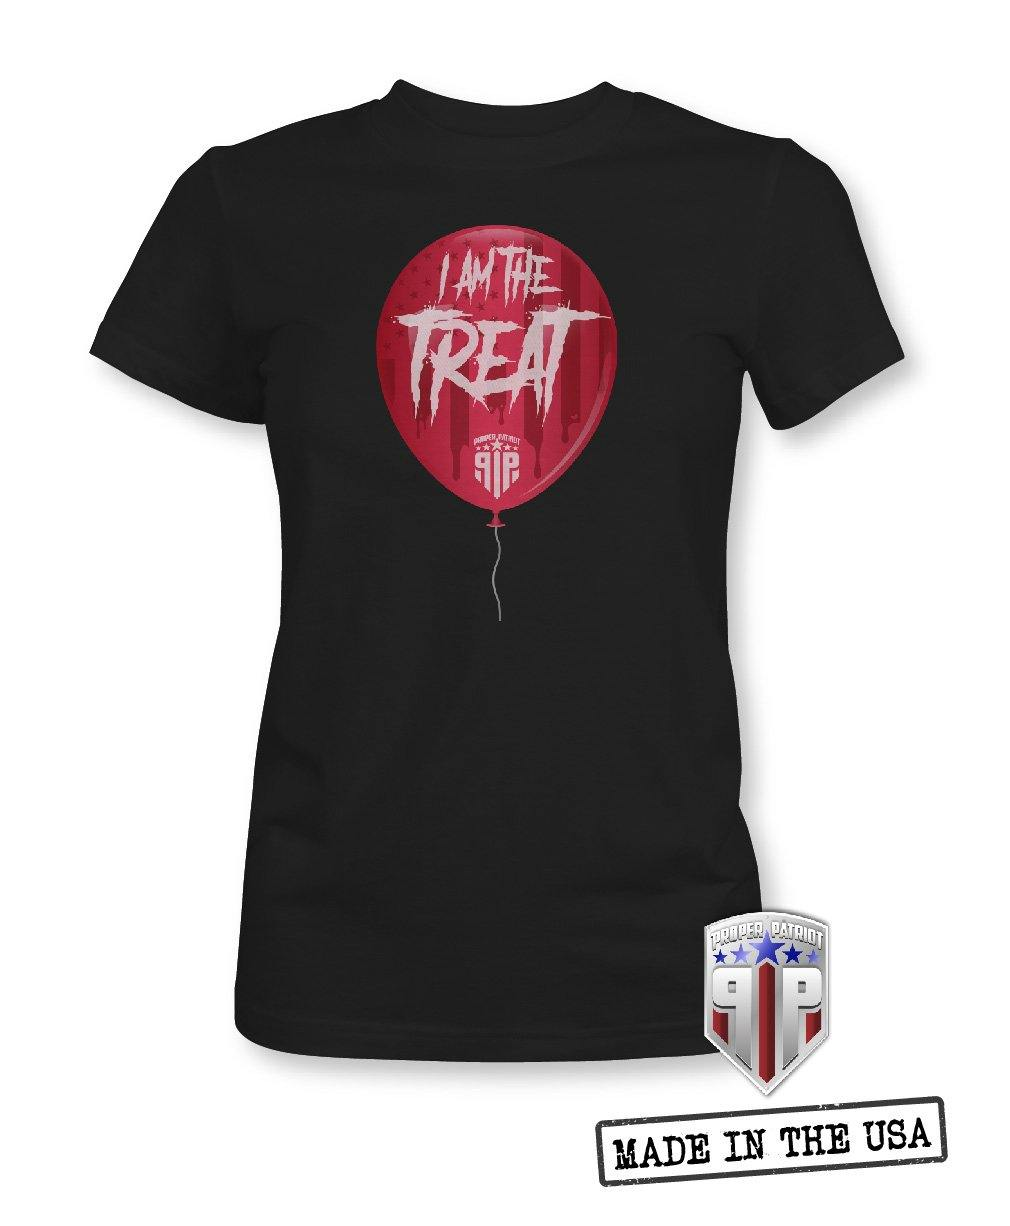 Stephen King's Pennywise IT Red Balloon - Spooky Halloween Apparel - Women's Patriotic Shirts